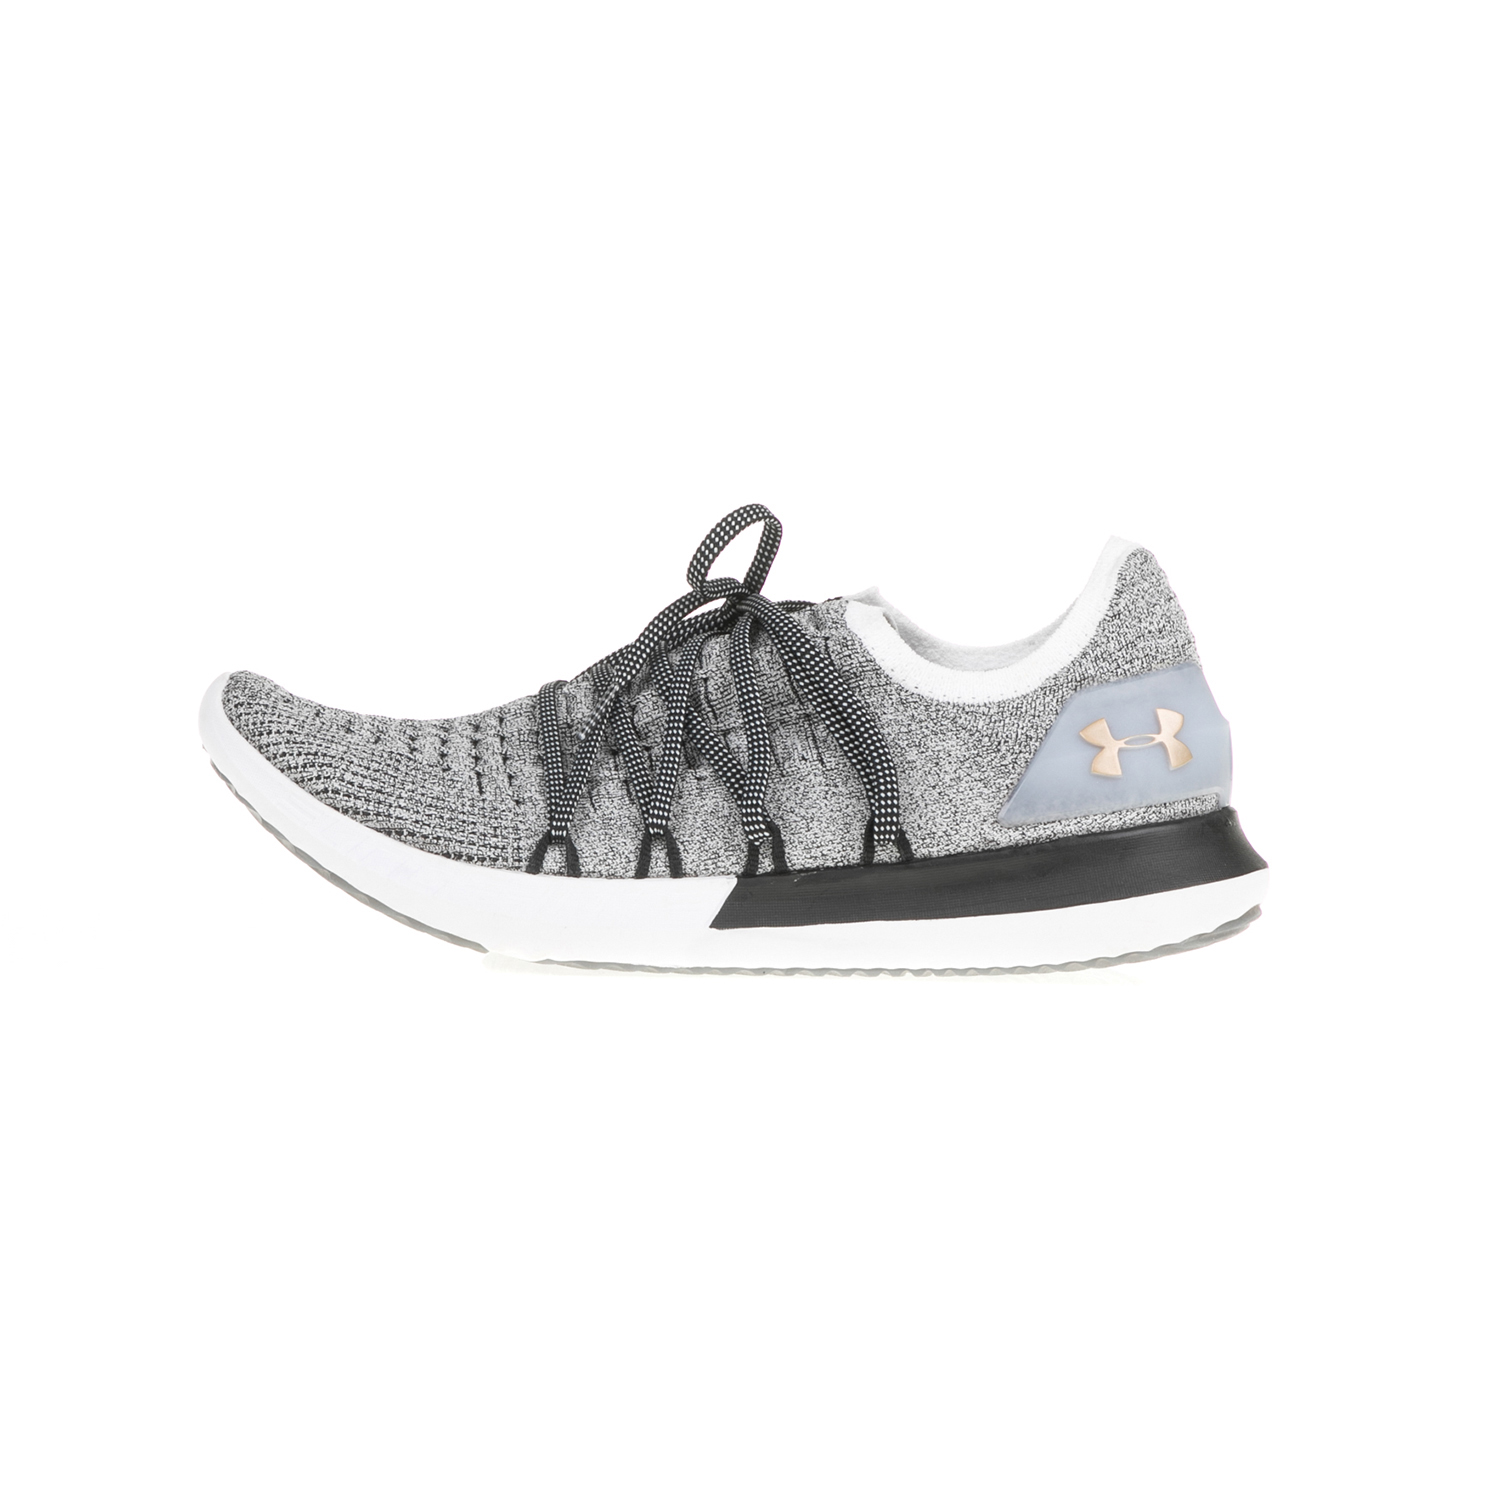 b88ac95efd5 -46% Factory Outlet UNDER ARMOUR – Ανδρικά αθλητικά παπούτσια UNDER ARMOUR  Speedform Slingshot 2 γκρι